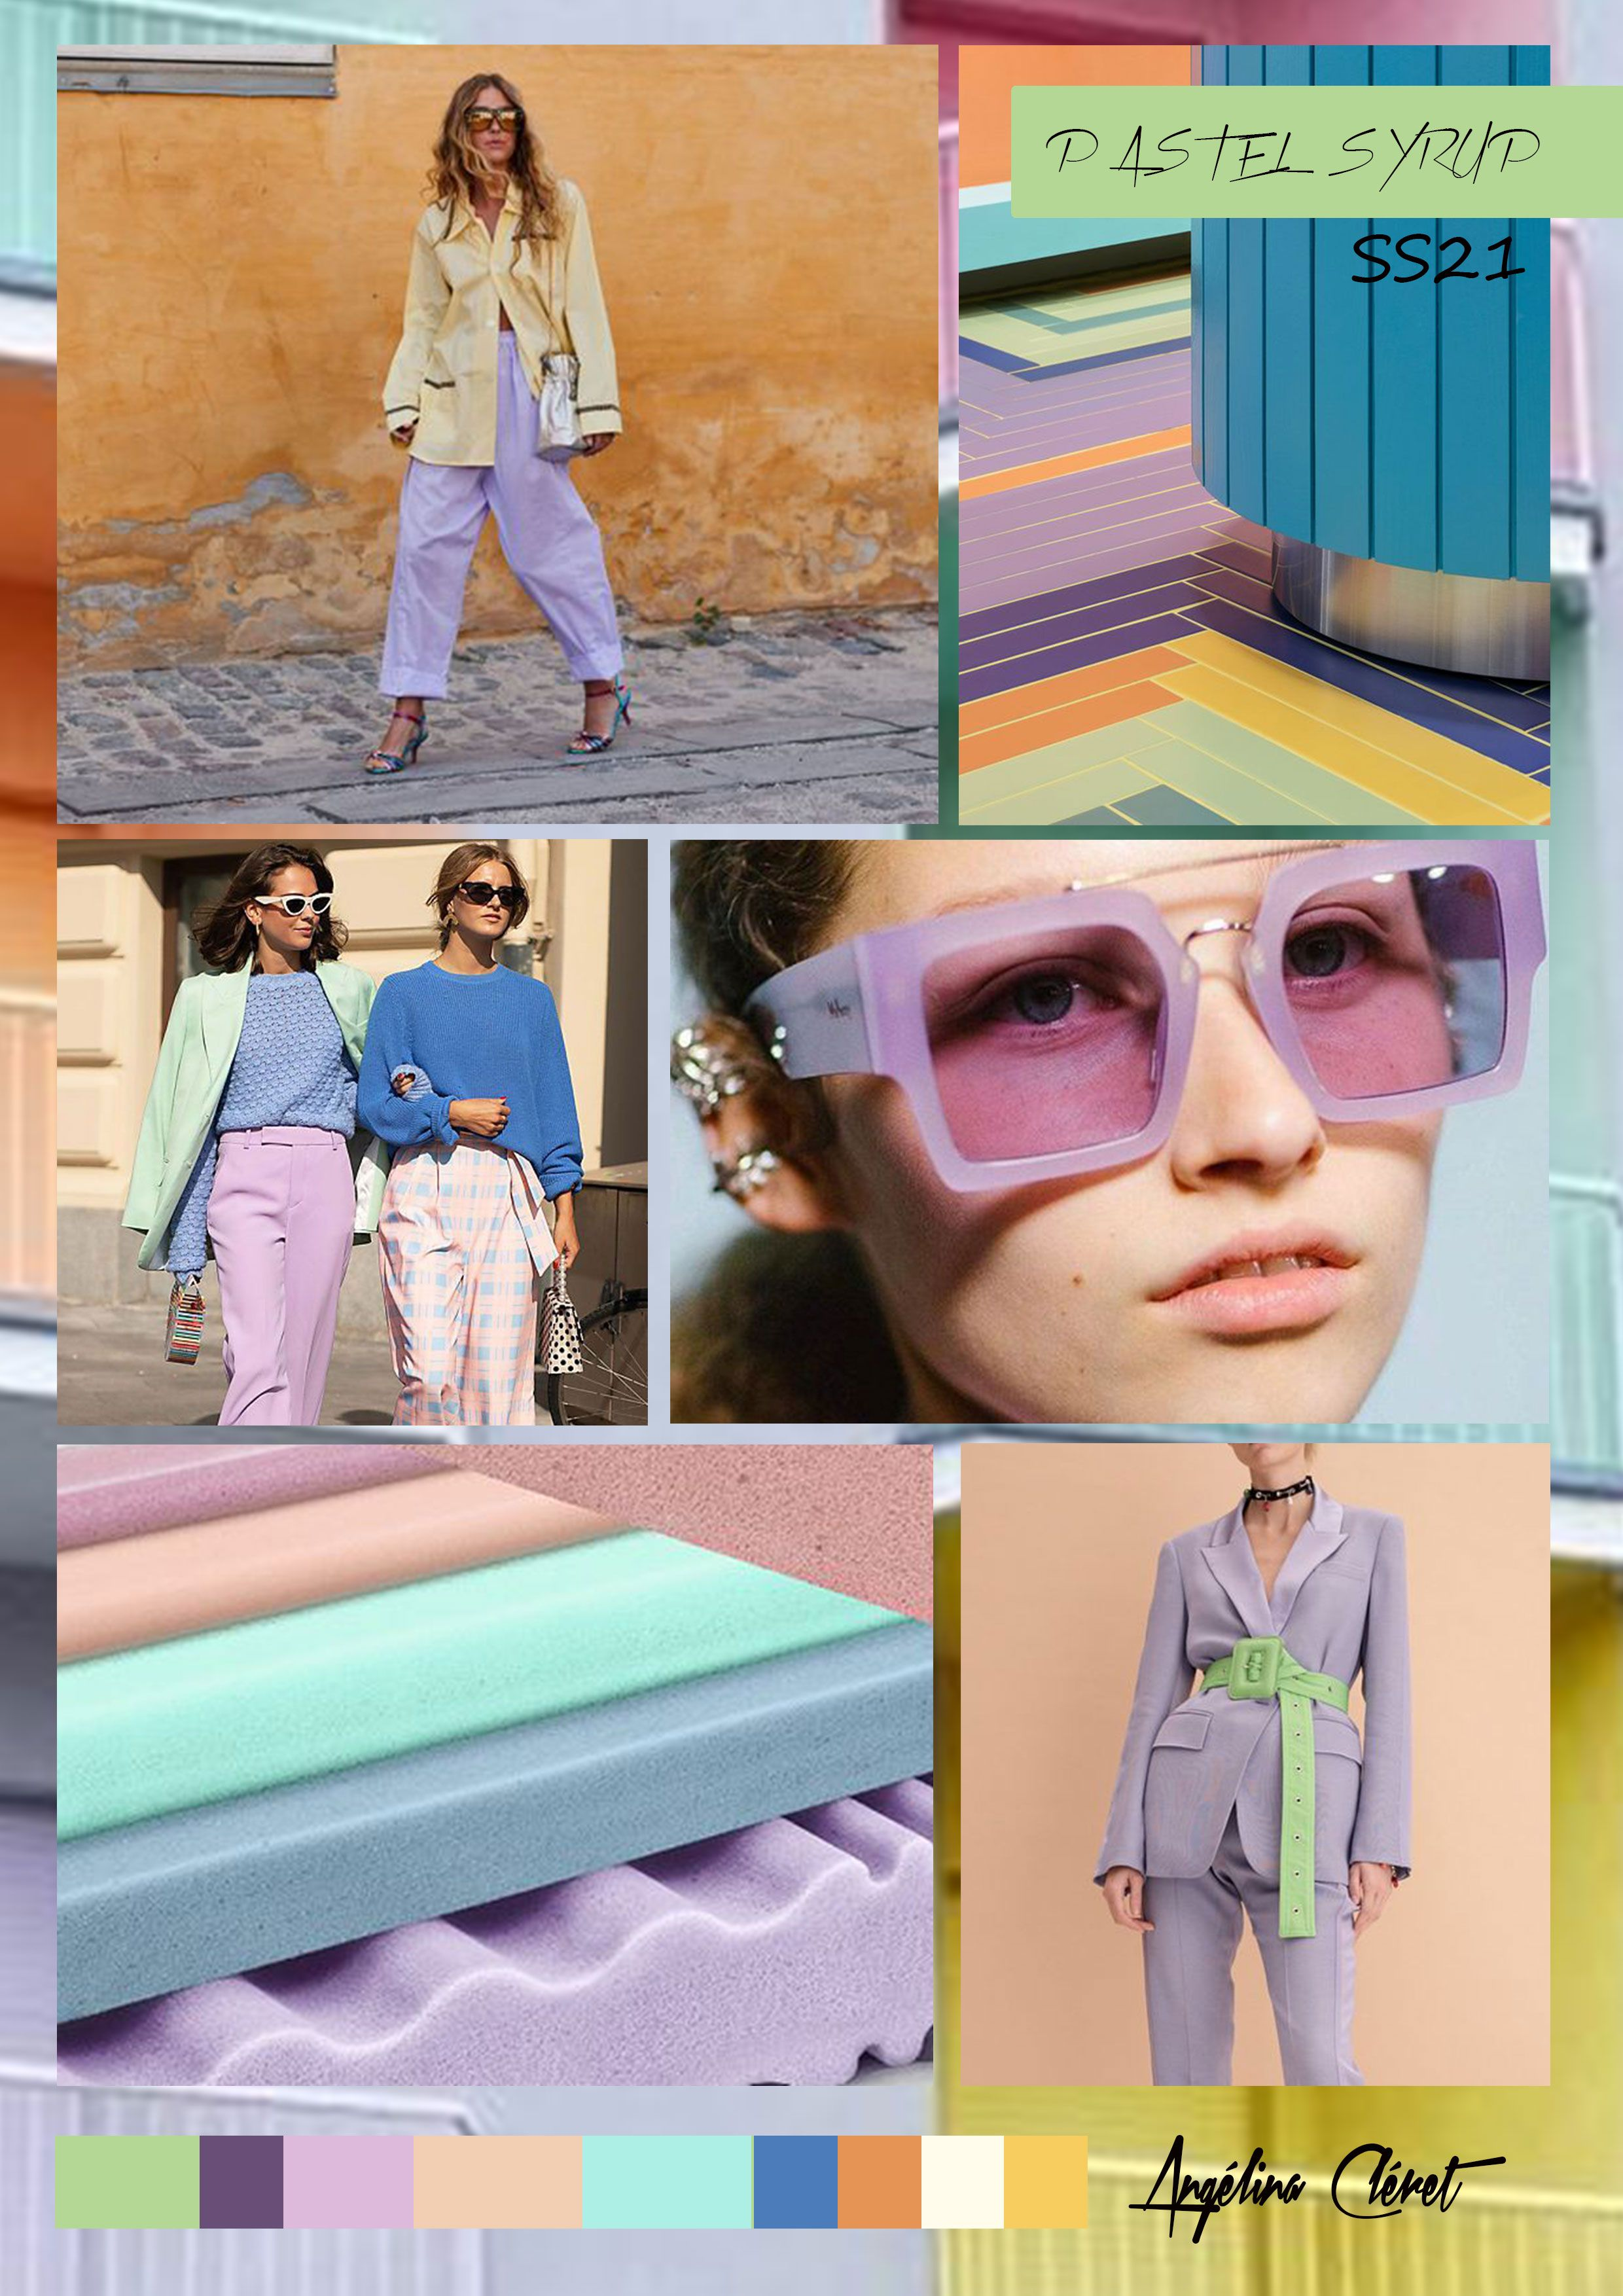 PASTEL SYRUP SS21 - Fashion & Colors Trend by Angélina Cléret